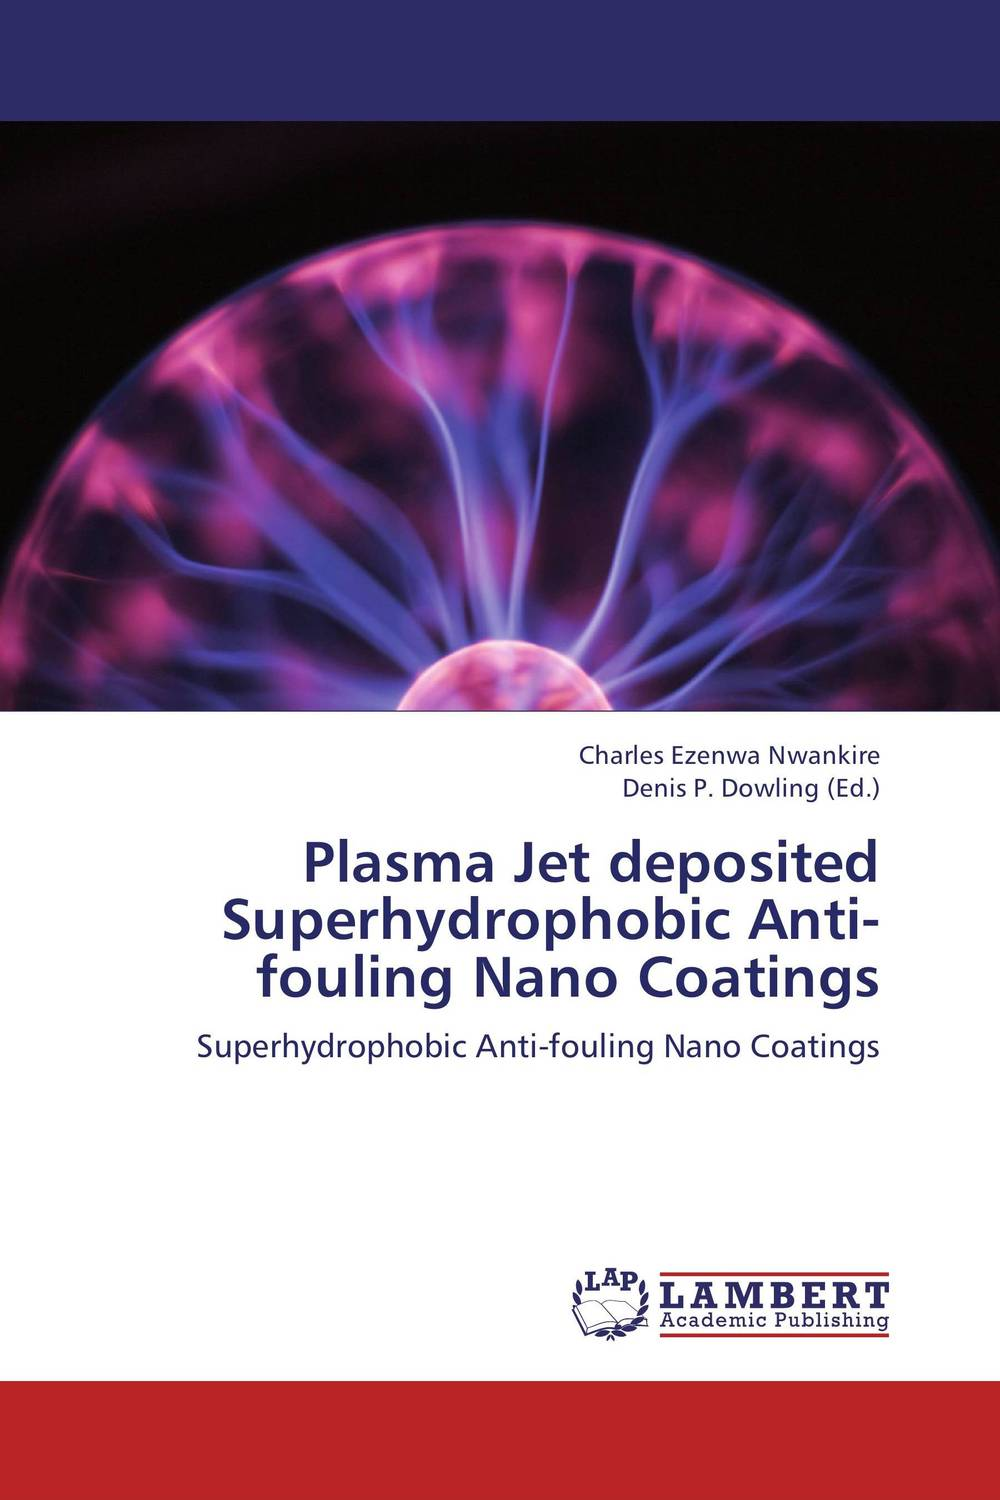 Plasma Jet deposited Superhydrophobic Anti-fouling Nano Coatings k17 jet a